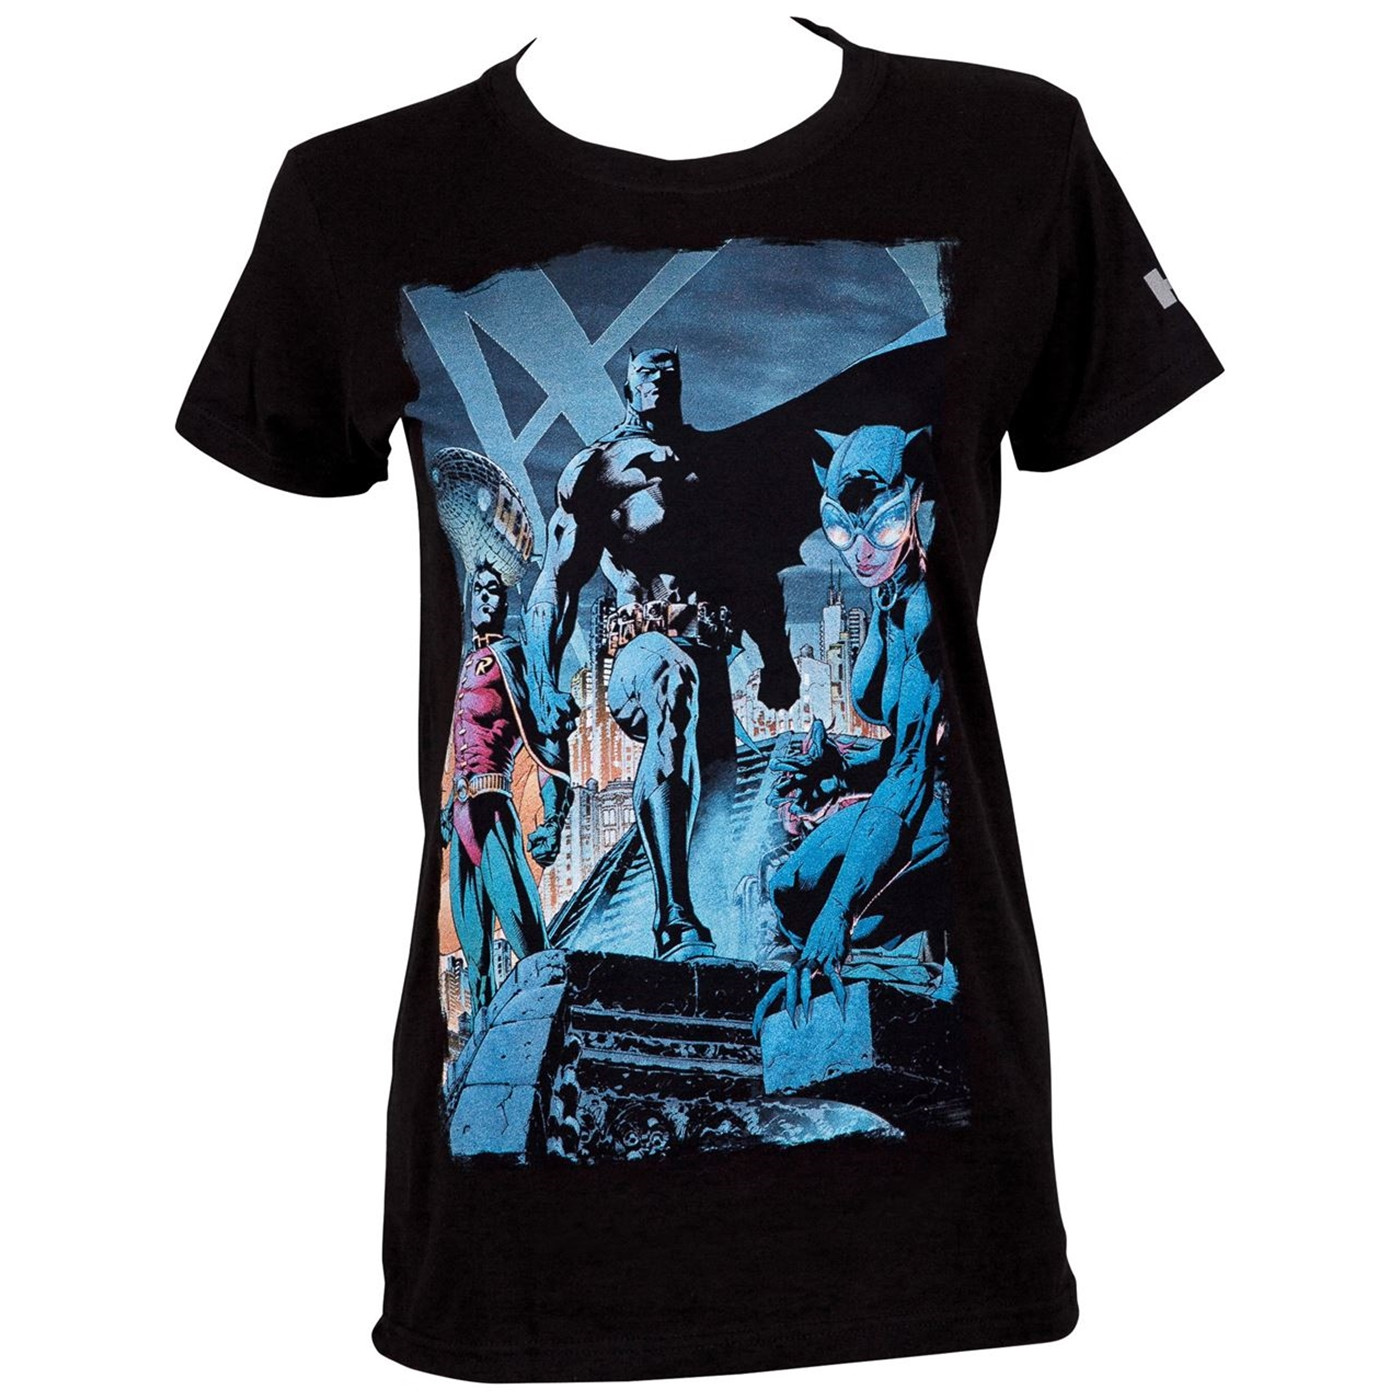 Batman Hush Comic Rooftop Meeting Image Women's T-Shirt